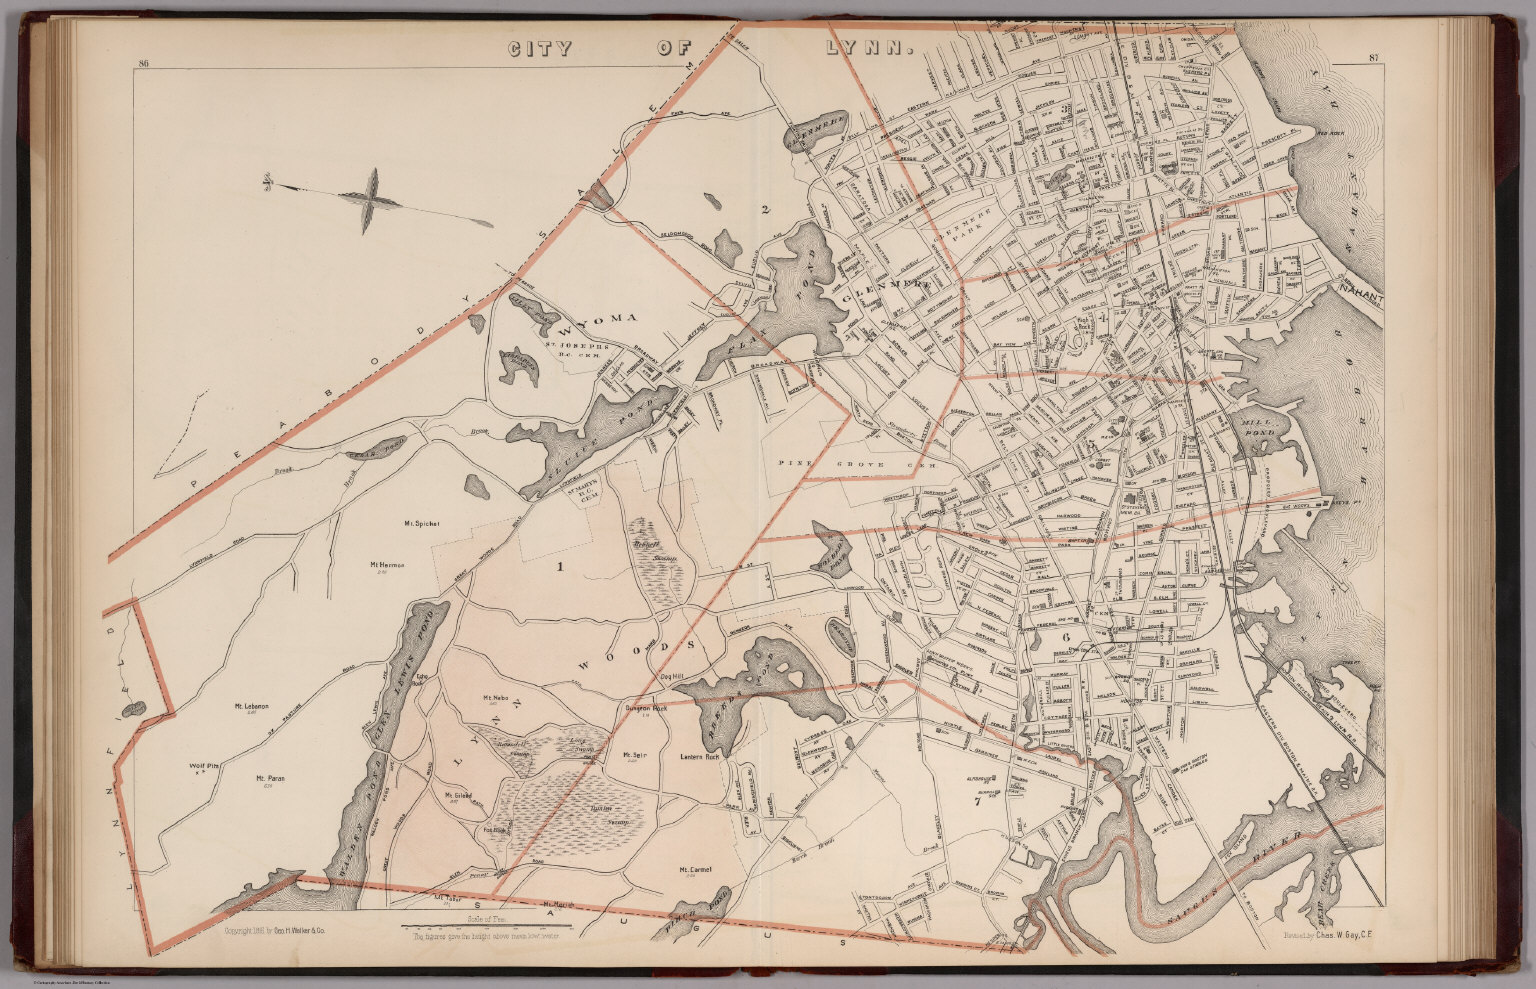 City of Lynn Massachusetts David Rumsey Historical Map Collection